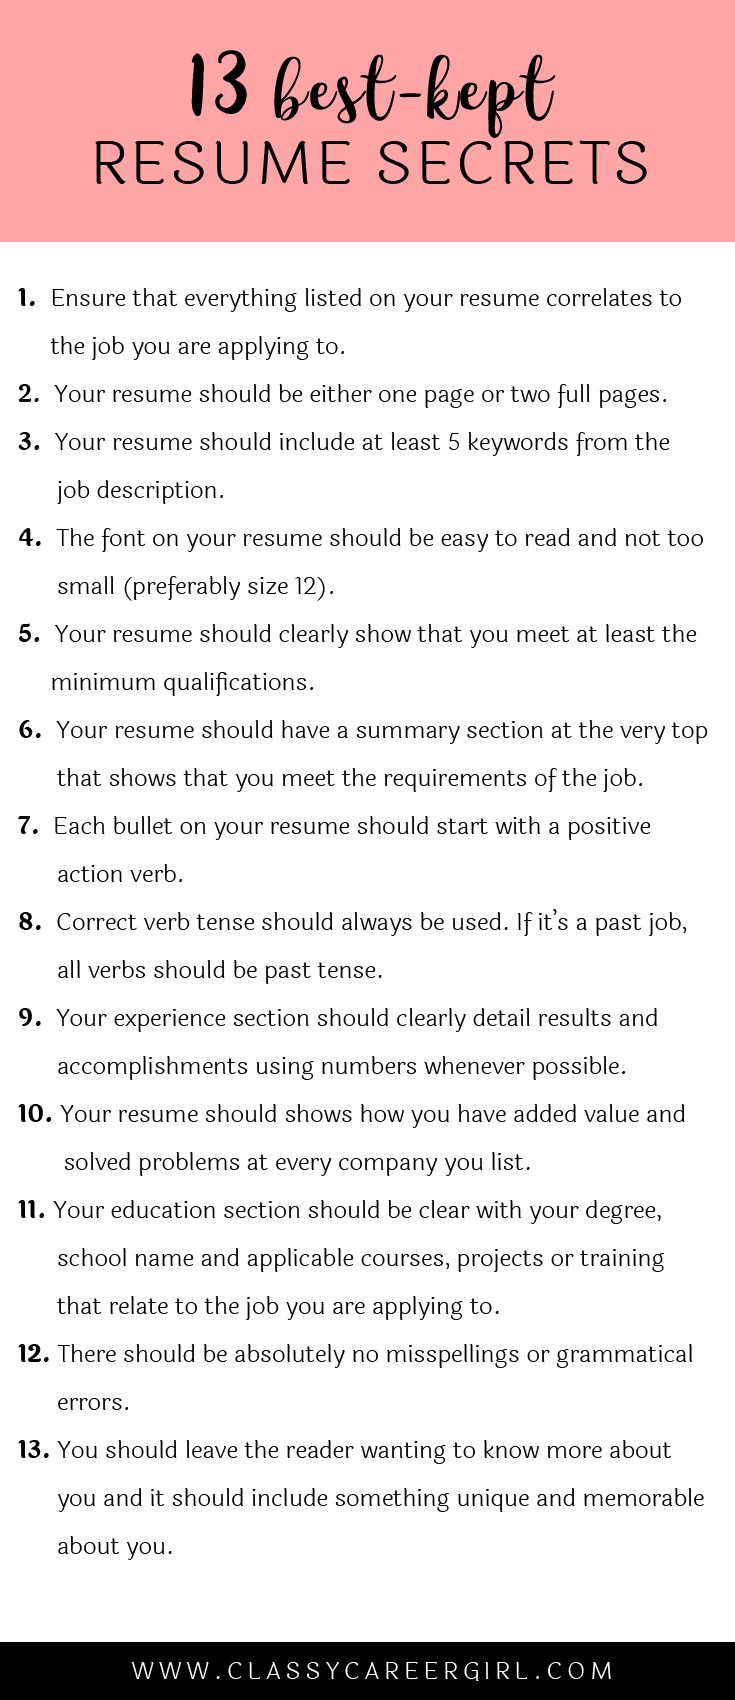 Opposenewapstandardsus  Remarkable  Ideas About Resume On Pinterest  Cv Format Resume Cv And  With Goodlooking Some Hiring Managers Will Toss Your Resume Out If You Dont Know These  With Archaic Speech Therapist Resume Also Customer Care Resume In Addition High School Graduate Resume Template And Cover Email For Resume As Well As Cosmetology Resume Objective Additionally Adjunct Professor Resume Sample From Pinterestcom With Opposenewapstandardsus  Goodlooking  Ideas About Resume On Pinterest  Cv Format Resume Cv And  With Archaic Some Hiring Managers Will Toss Your Resume Out If You Dont Know These  And Remarkable Speech Therapist Resume Also Customer Care Resume In Addition High School Graduate Resume Template From Pinterestcom